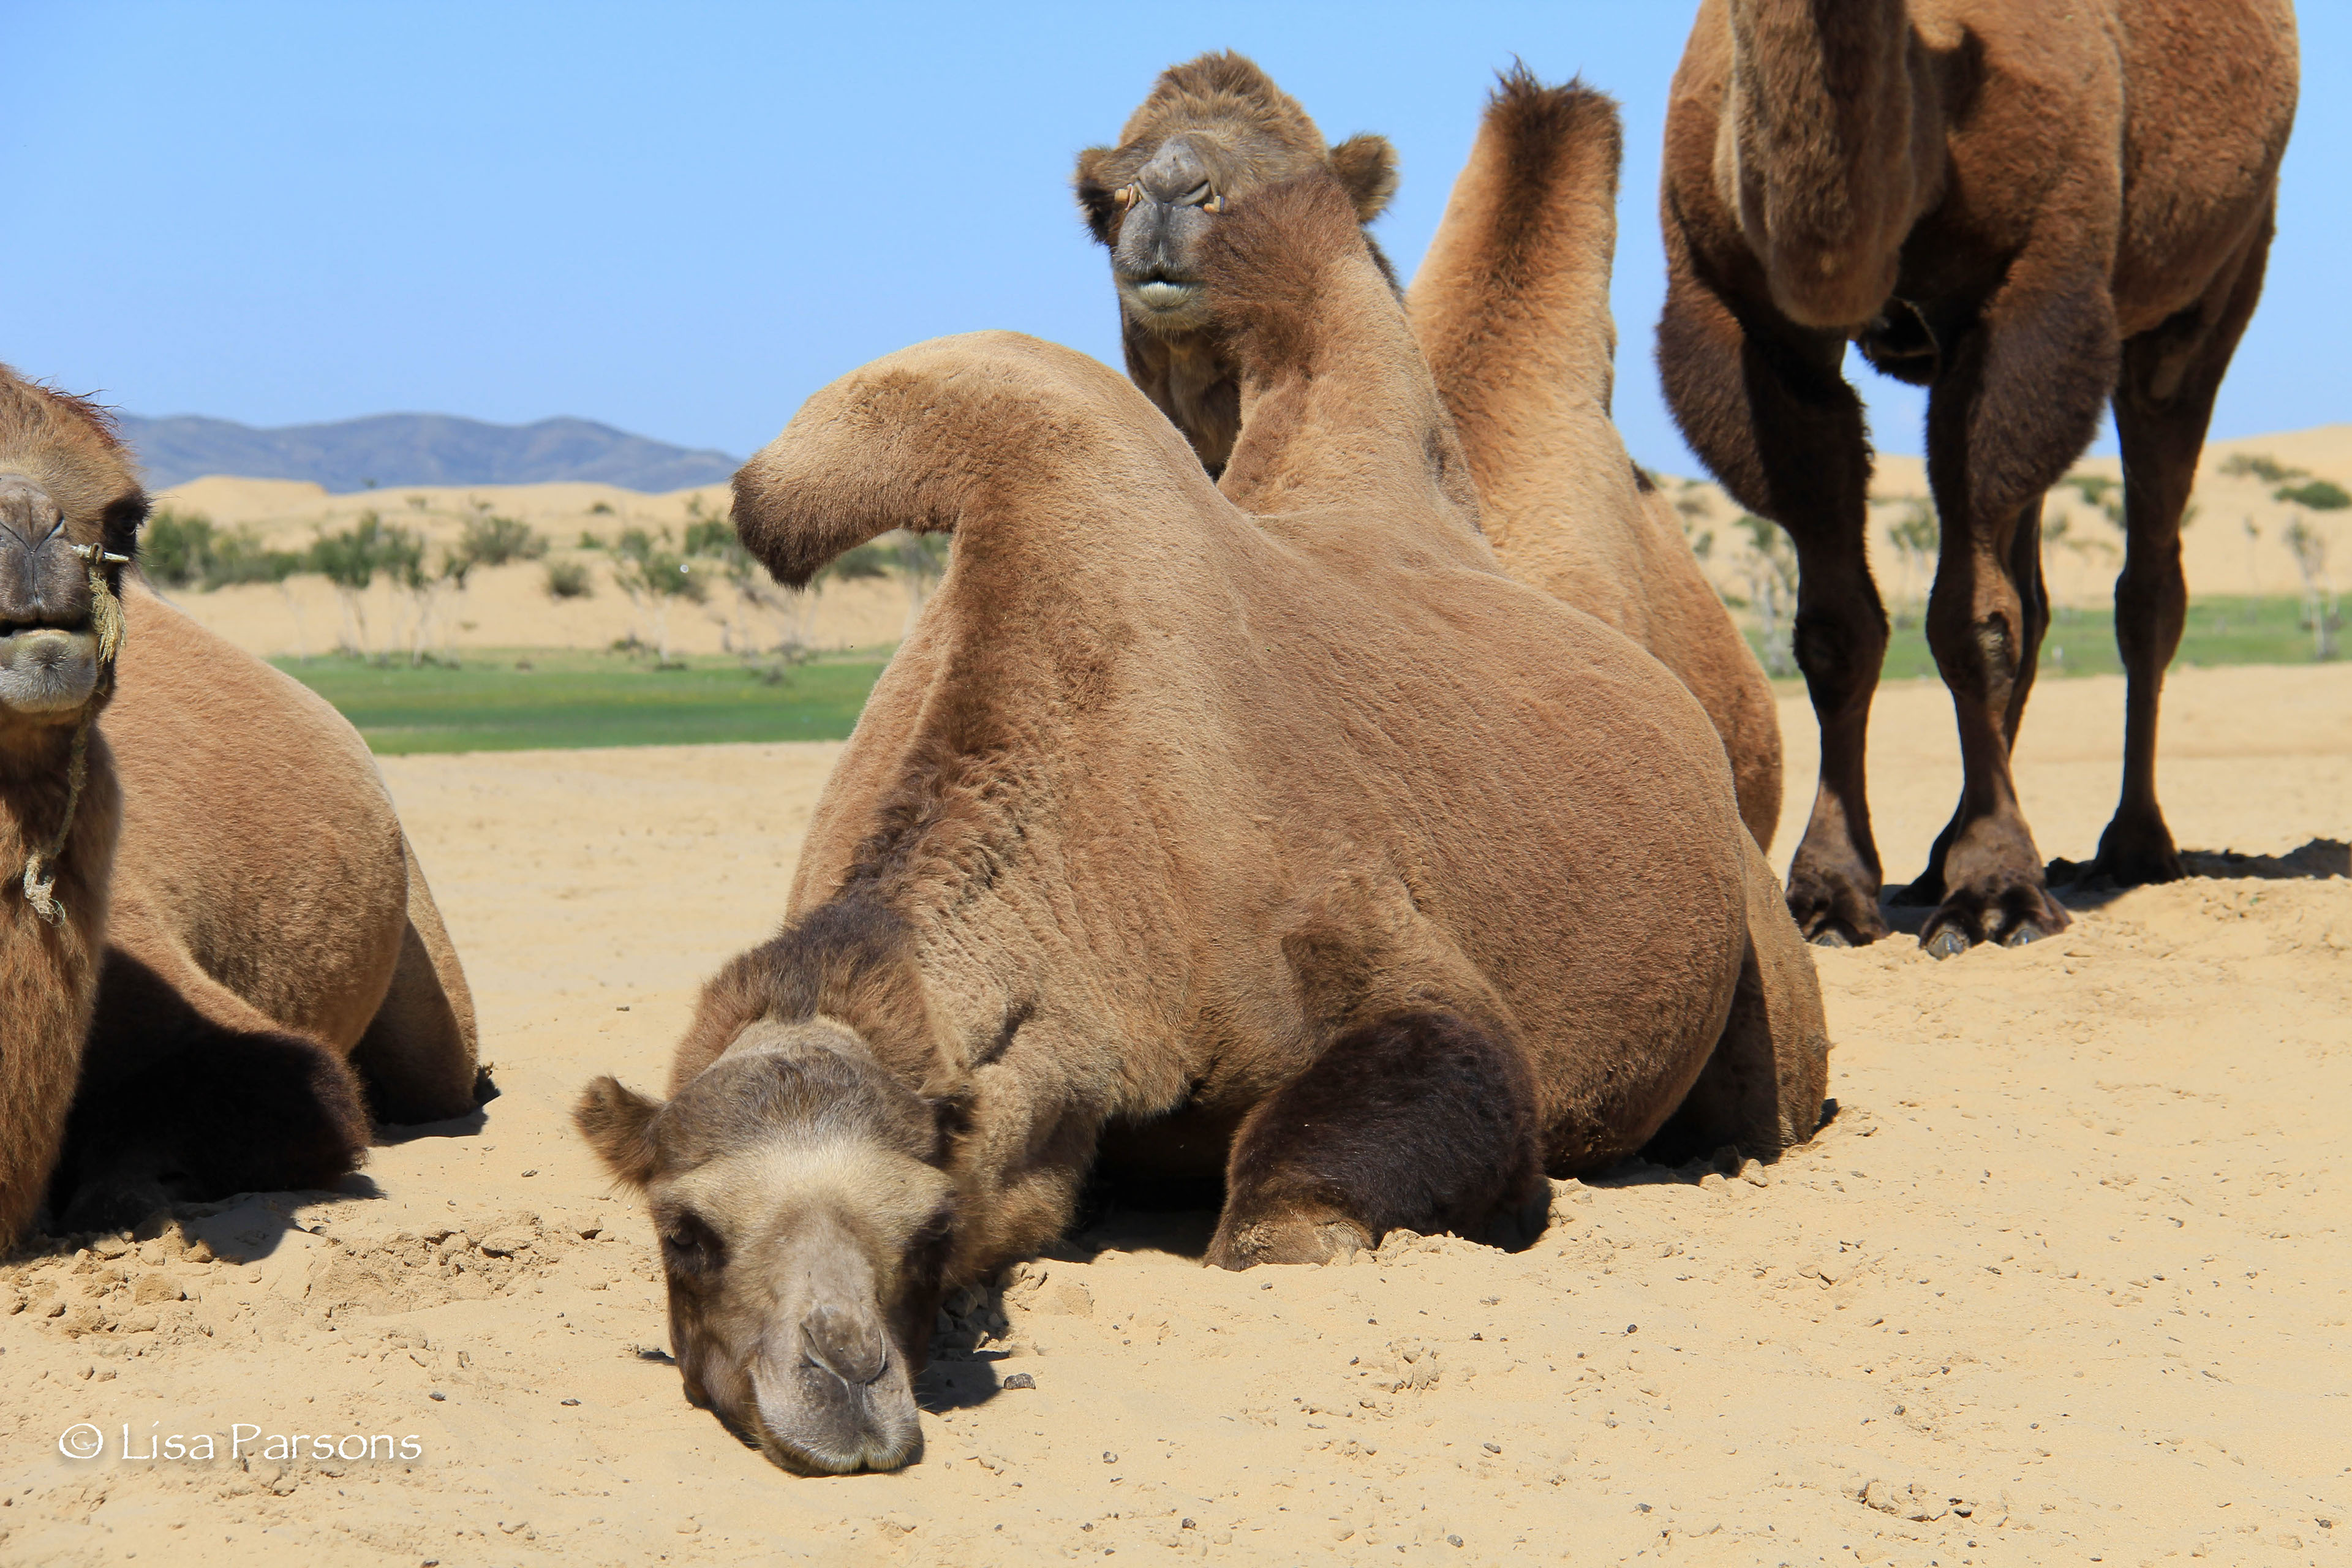 a look at two humped bactrian camel of central asia Camels are mammals with long legs, a big-lipped snout and a humped back there are two types of camels: dromedary camels, which have one hump, and bactrian camels, which have two humps camels' humps consist of stored fat, which they can metabolize when food and water is scarce in addition to their.